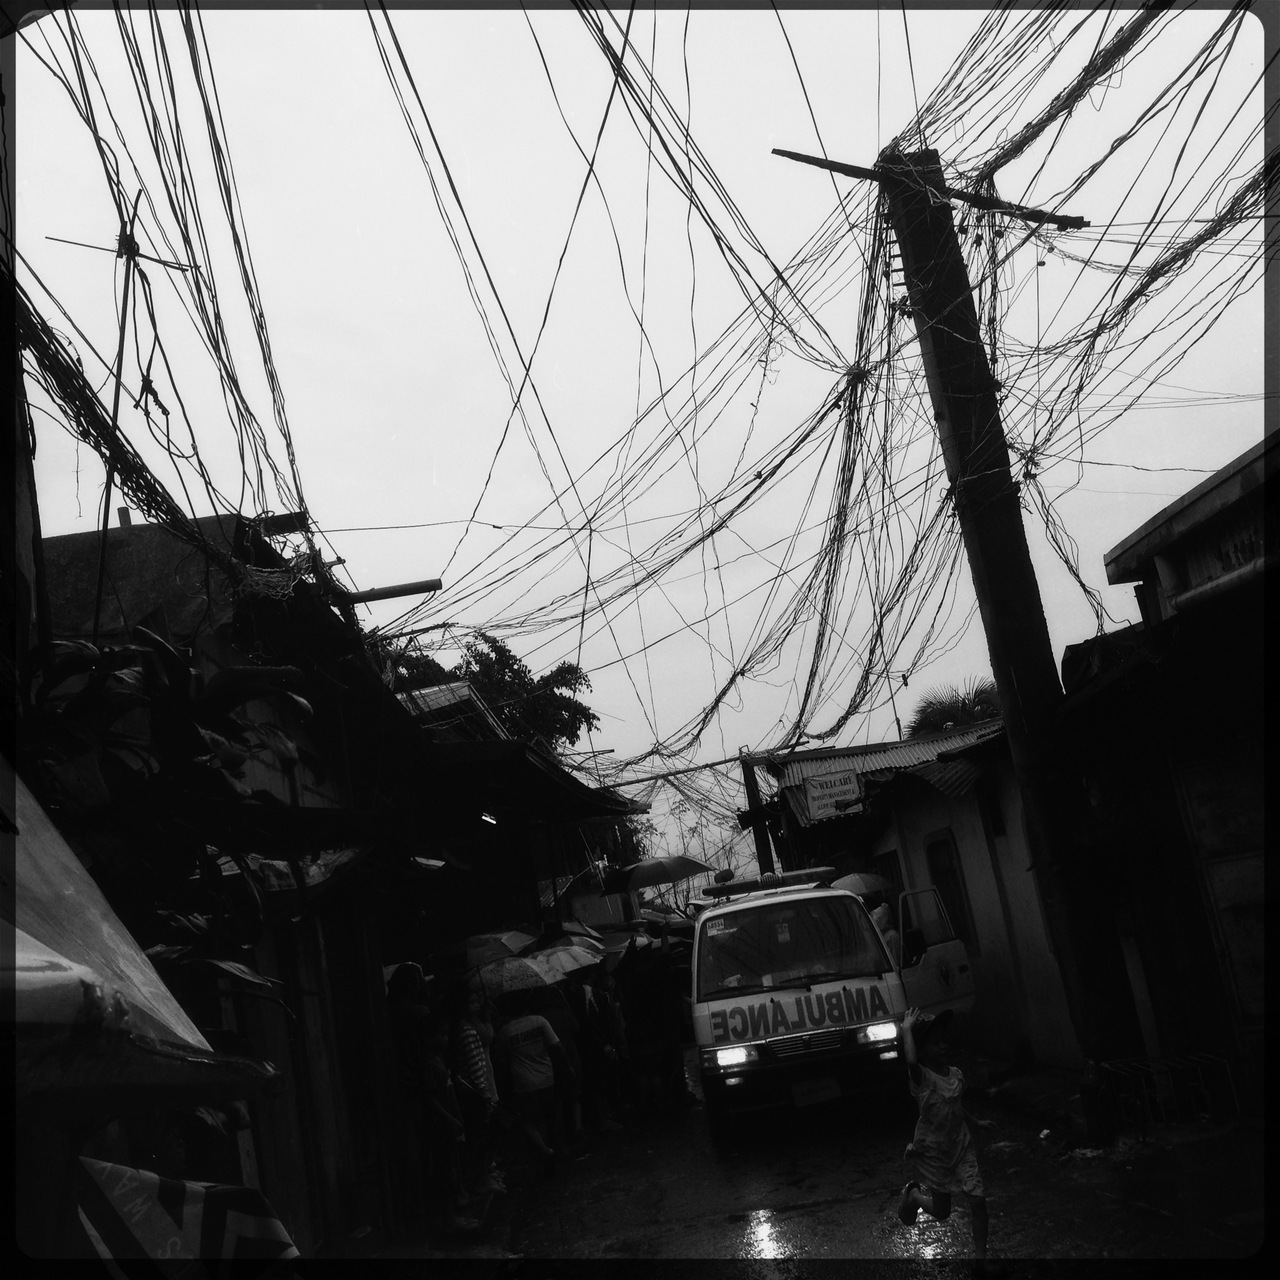 Death strikes via landslide in the Payatas area once again. Everytime a storm hits the area pretty bad, it happens. Over and over and over gain